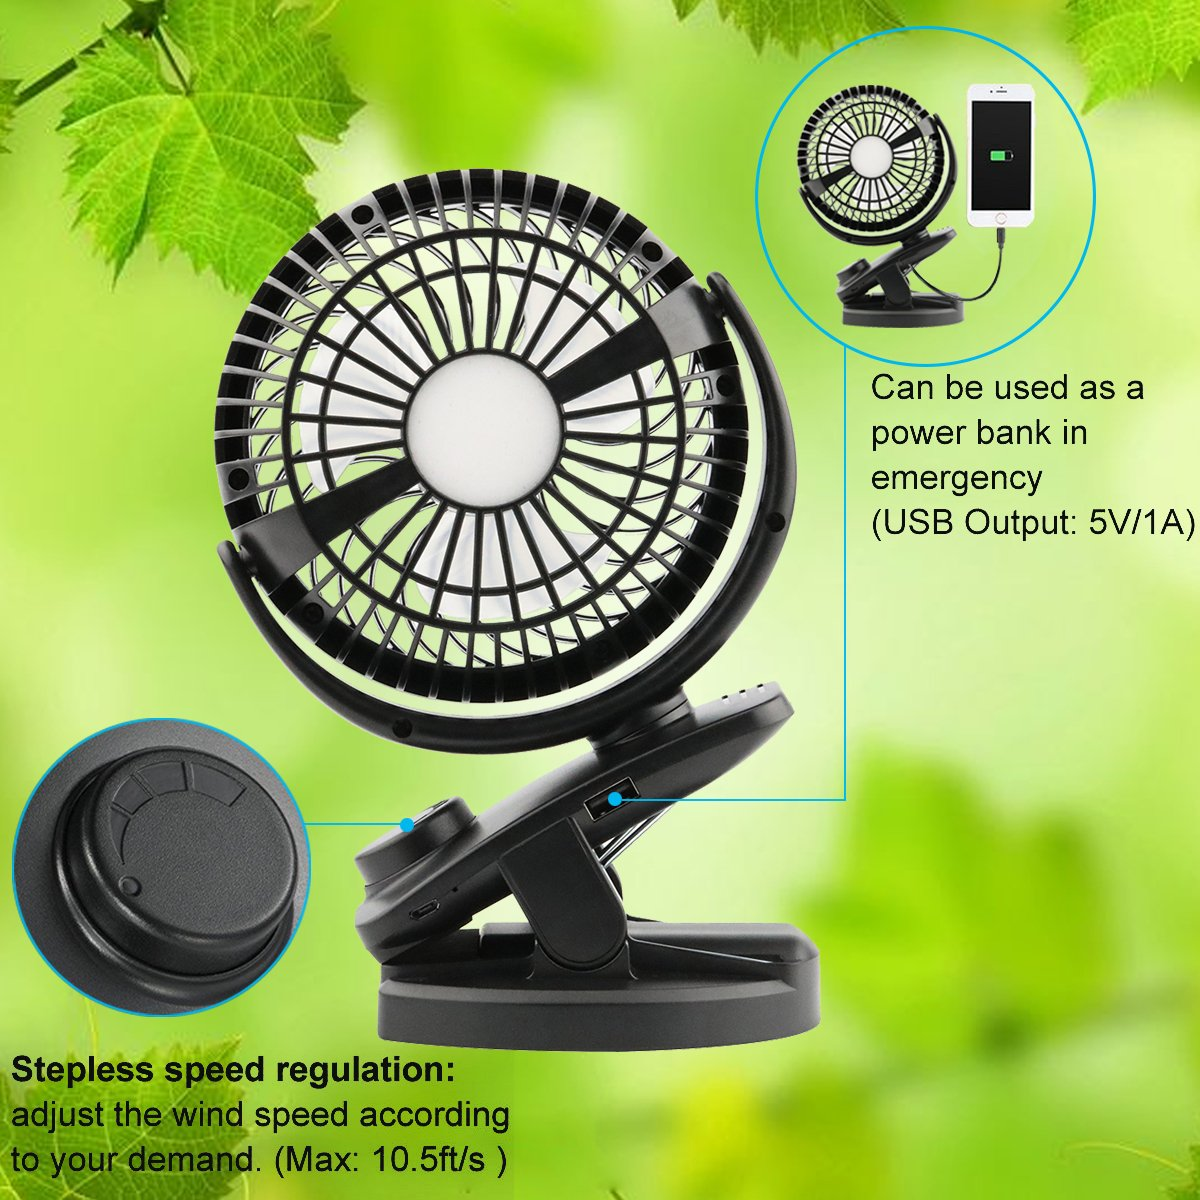 DC 5V Portable USB Rechargeable Mini Fan 4400mA Battery Operated for Baby Stroller Desk Gym Travel